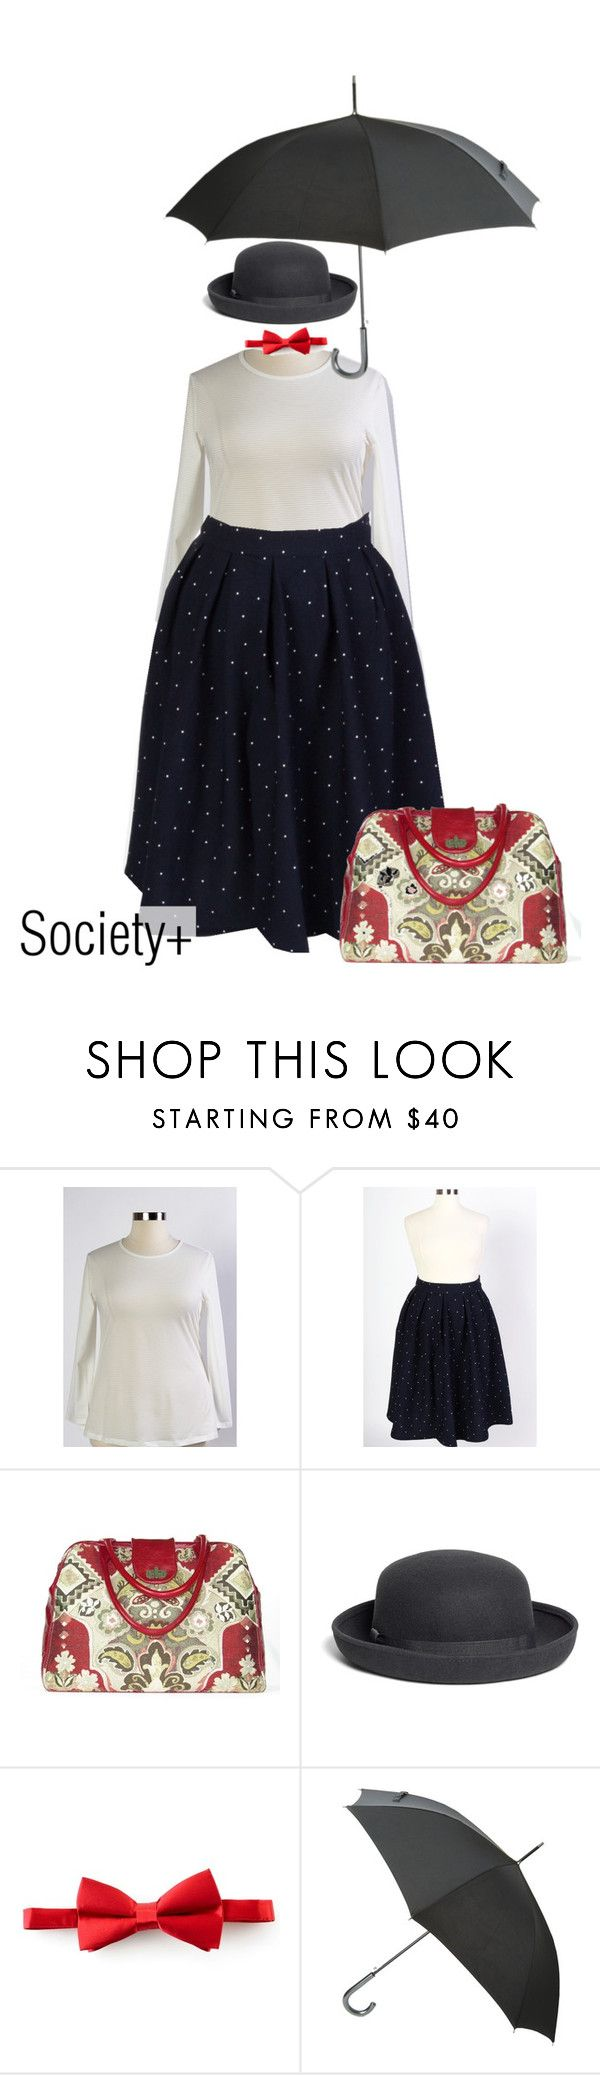 """Plus Size Mary Poppins Costume - Society+"" by iamsocietyplus on Polyvore featuring Brooks Brothers, Michelsons, Kenzo, Halloween, Costume, plussize, societyplus and iamsocietyplus"